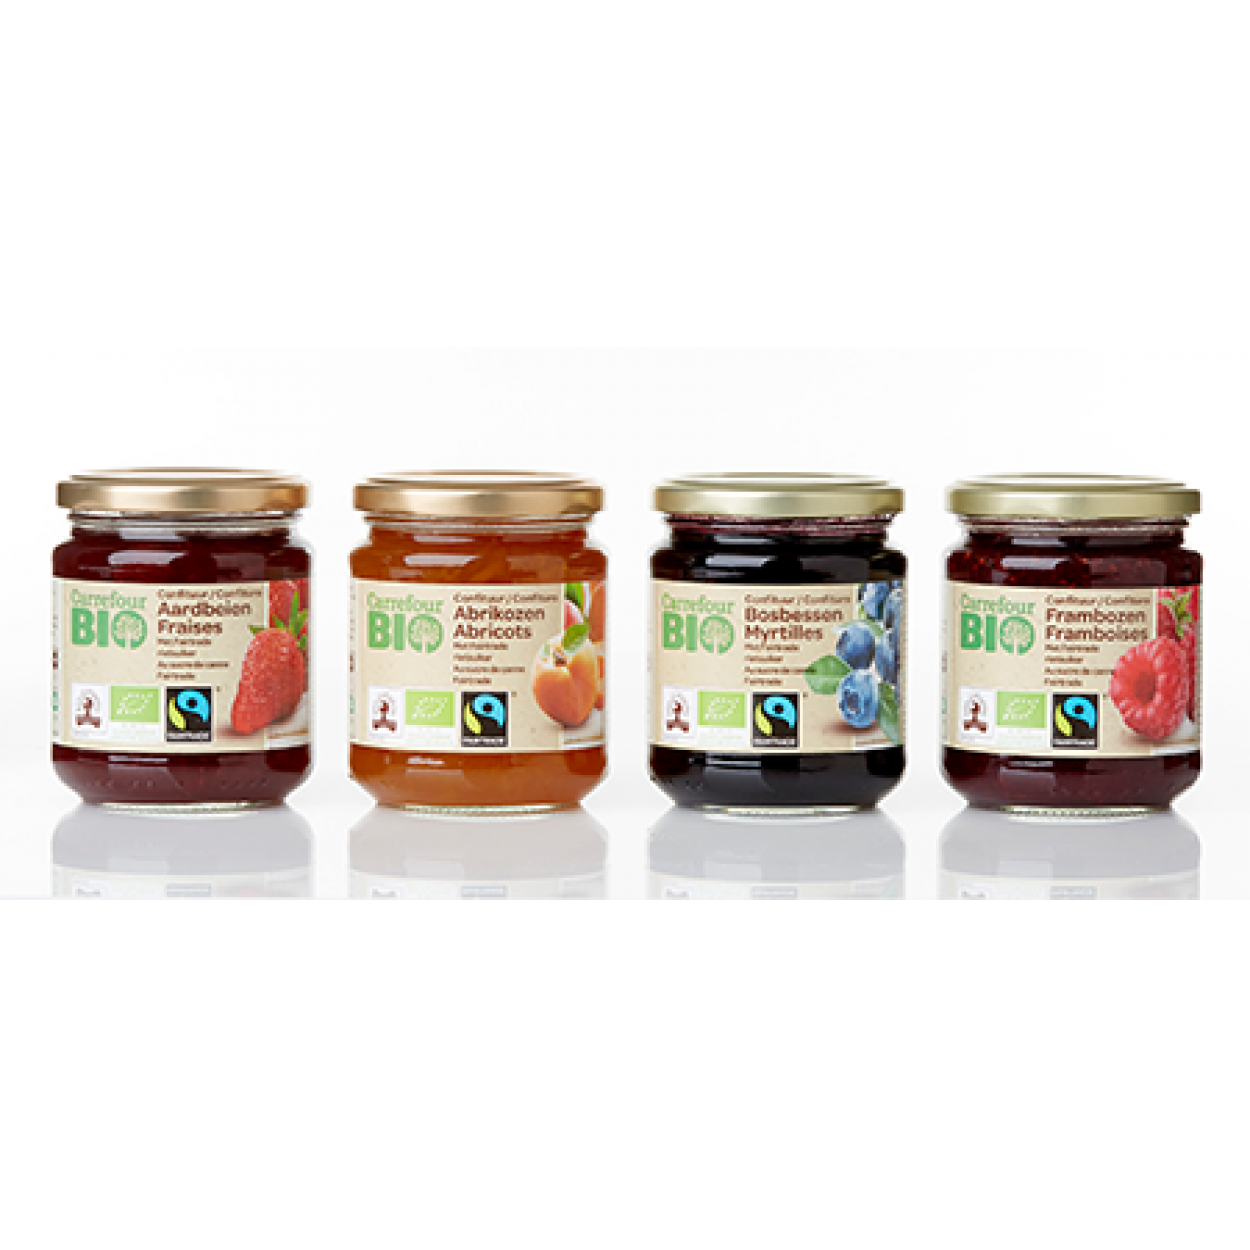 Confiture Fairtrade - Carrefour